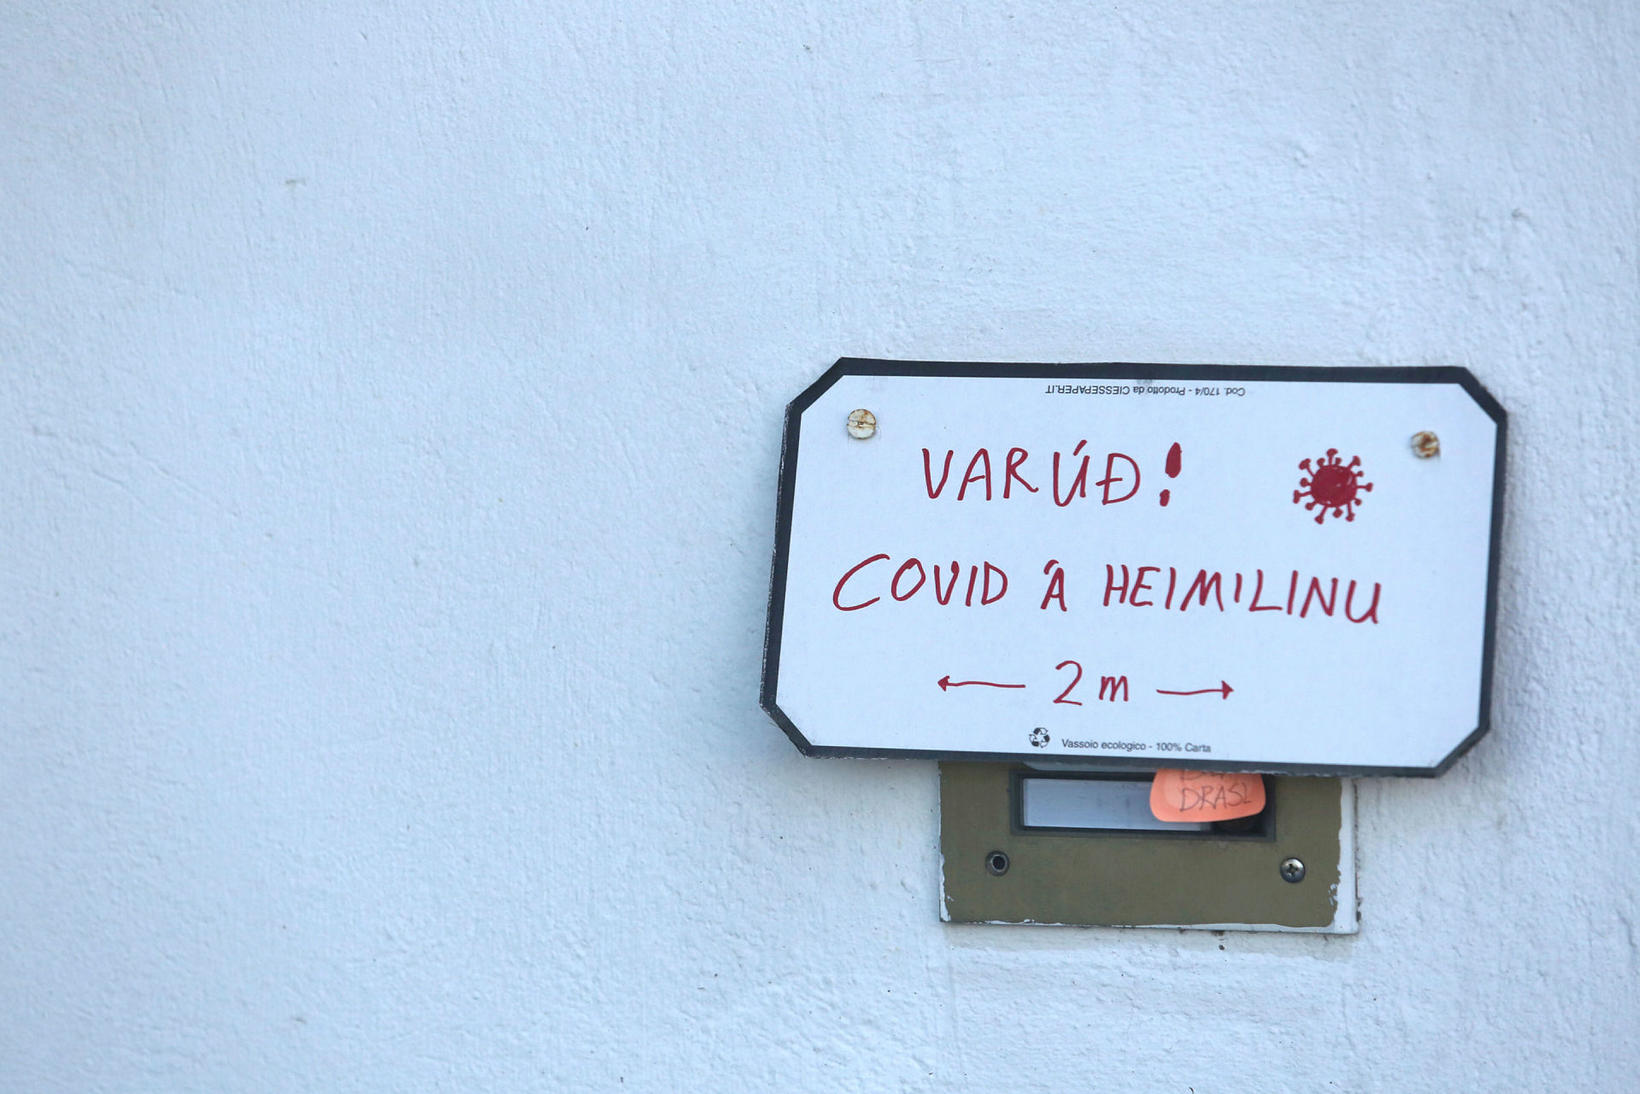 """The sign reads: """"Warning! COVID-infected home. 2 m."""